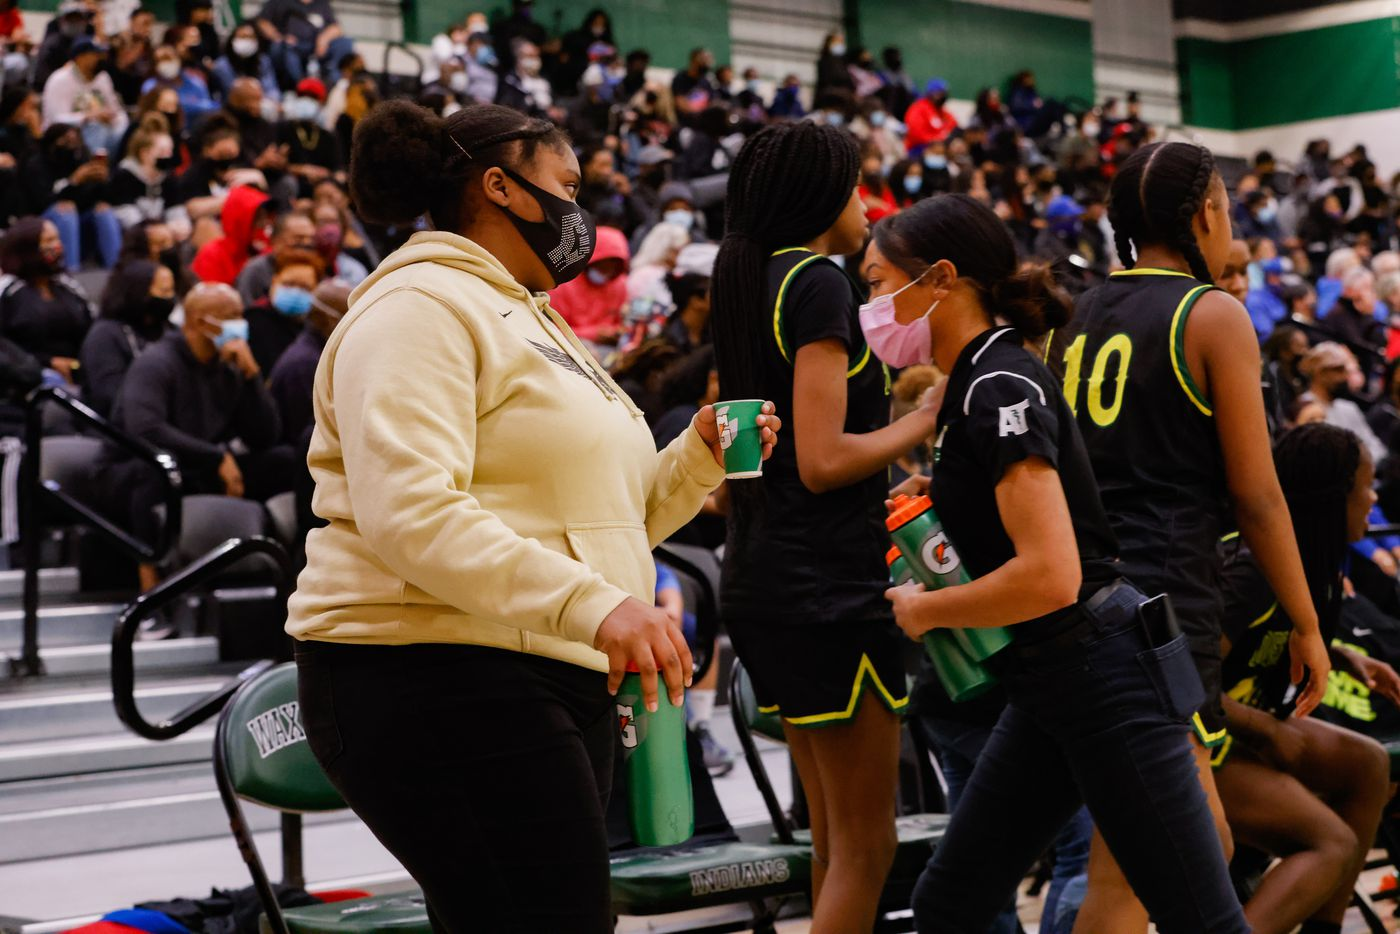 DeSoto's student trainers Corrie Crawford (left) and Khiya Cockerham prepare water for the players during the second half of a girls basketball Class 6A Region II UIL game against Duncanville in Waxahachie on Tuesday, March 2, 2021. DeSoto won the game 52-39. (Juan Figueroa/ The Dallas Morning News)